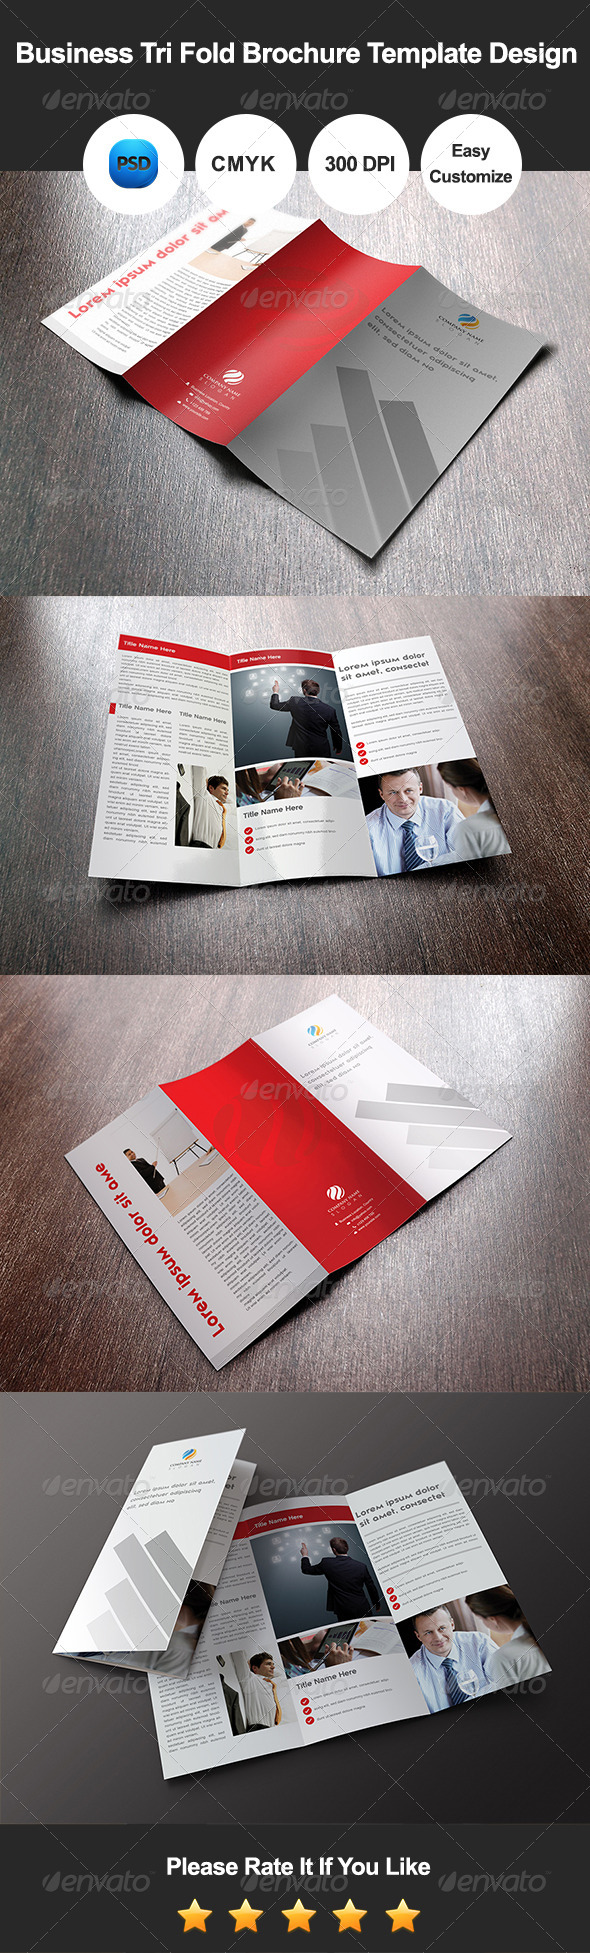 GraphicRiver Business Tri Fold Brochure Template Design 7474847